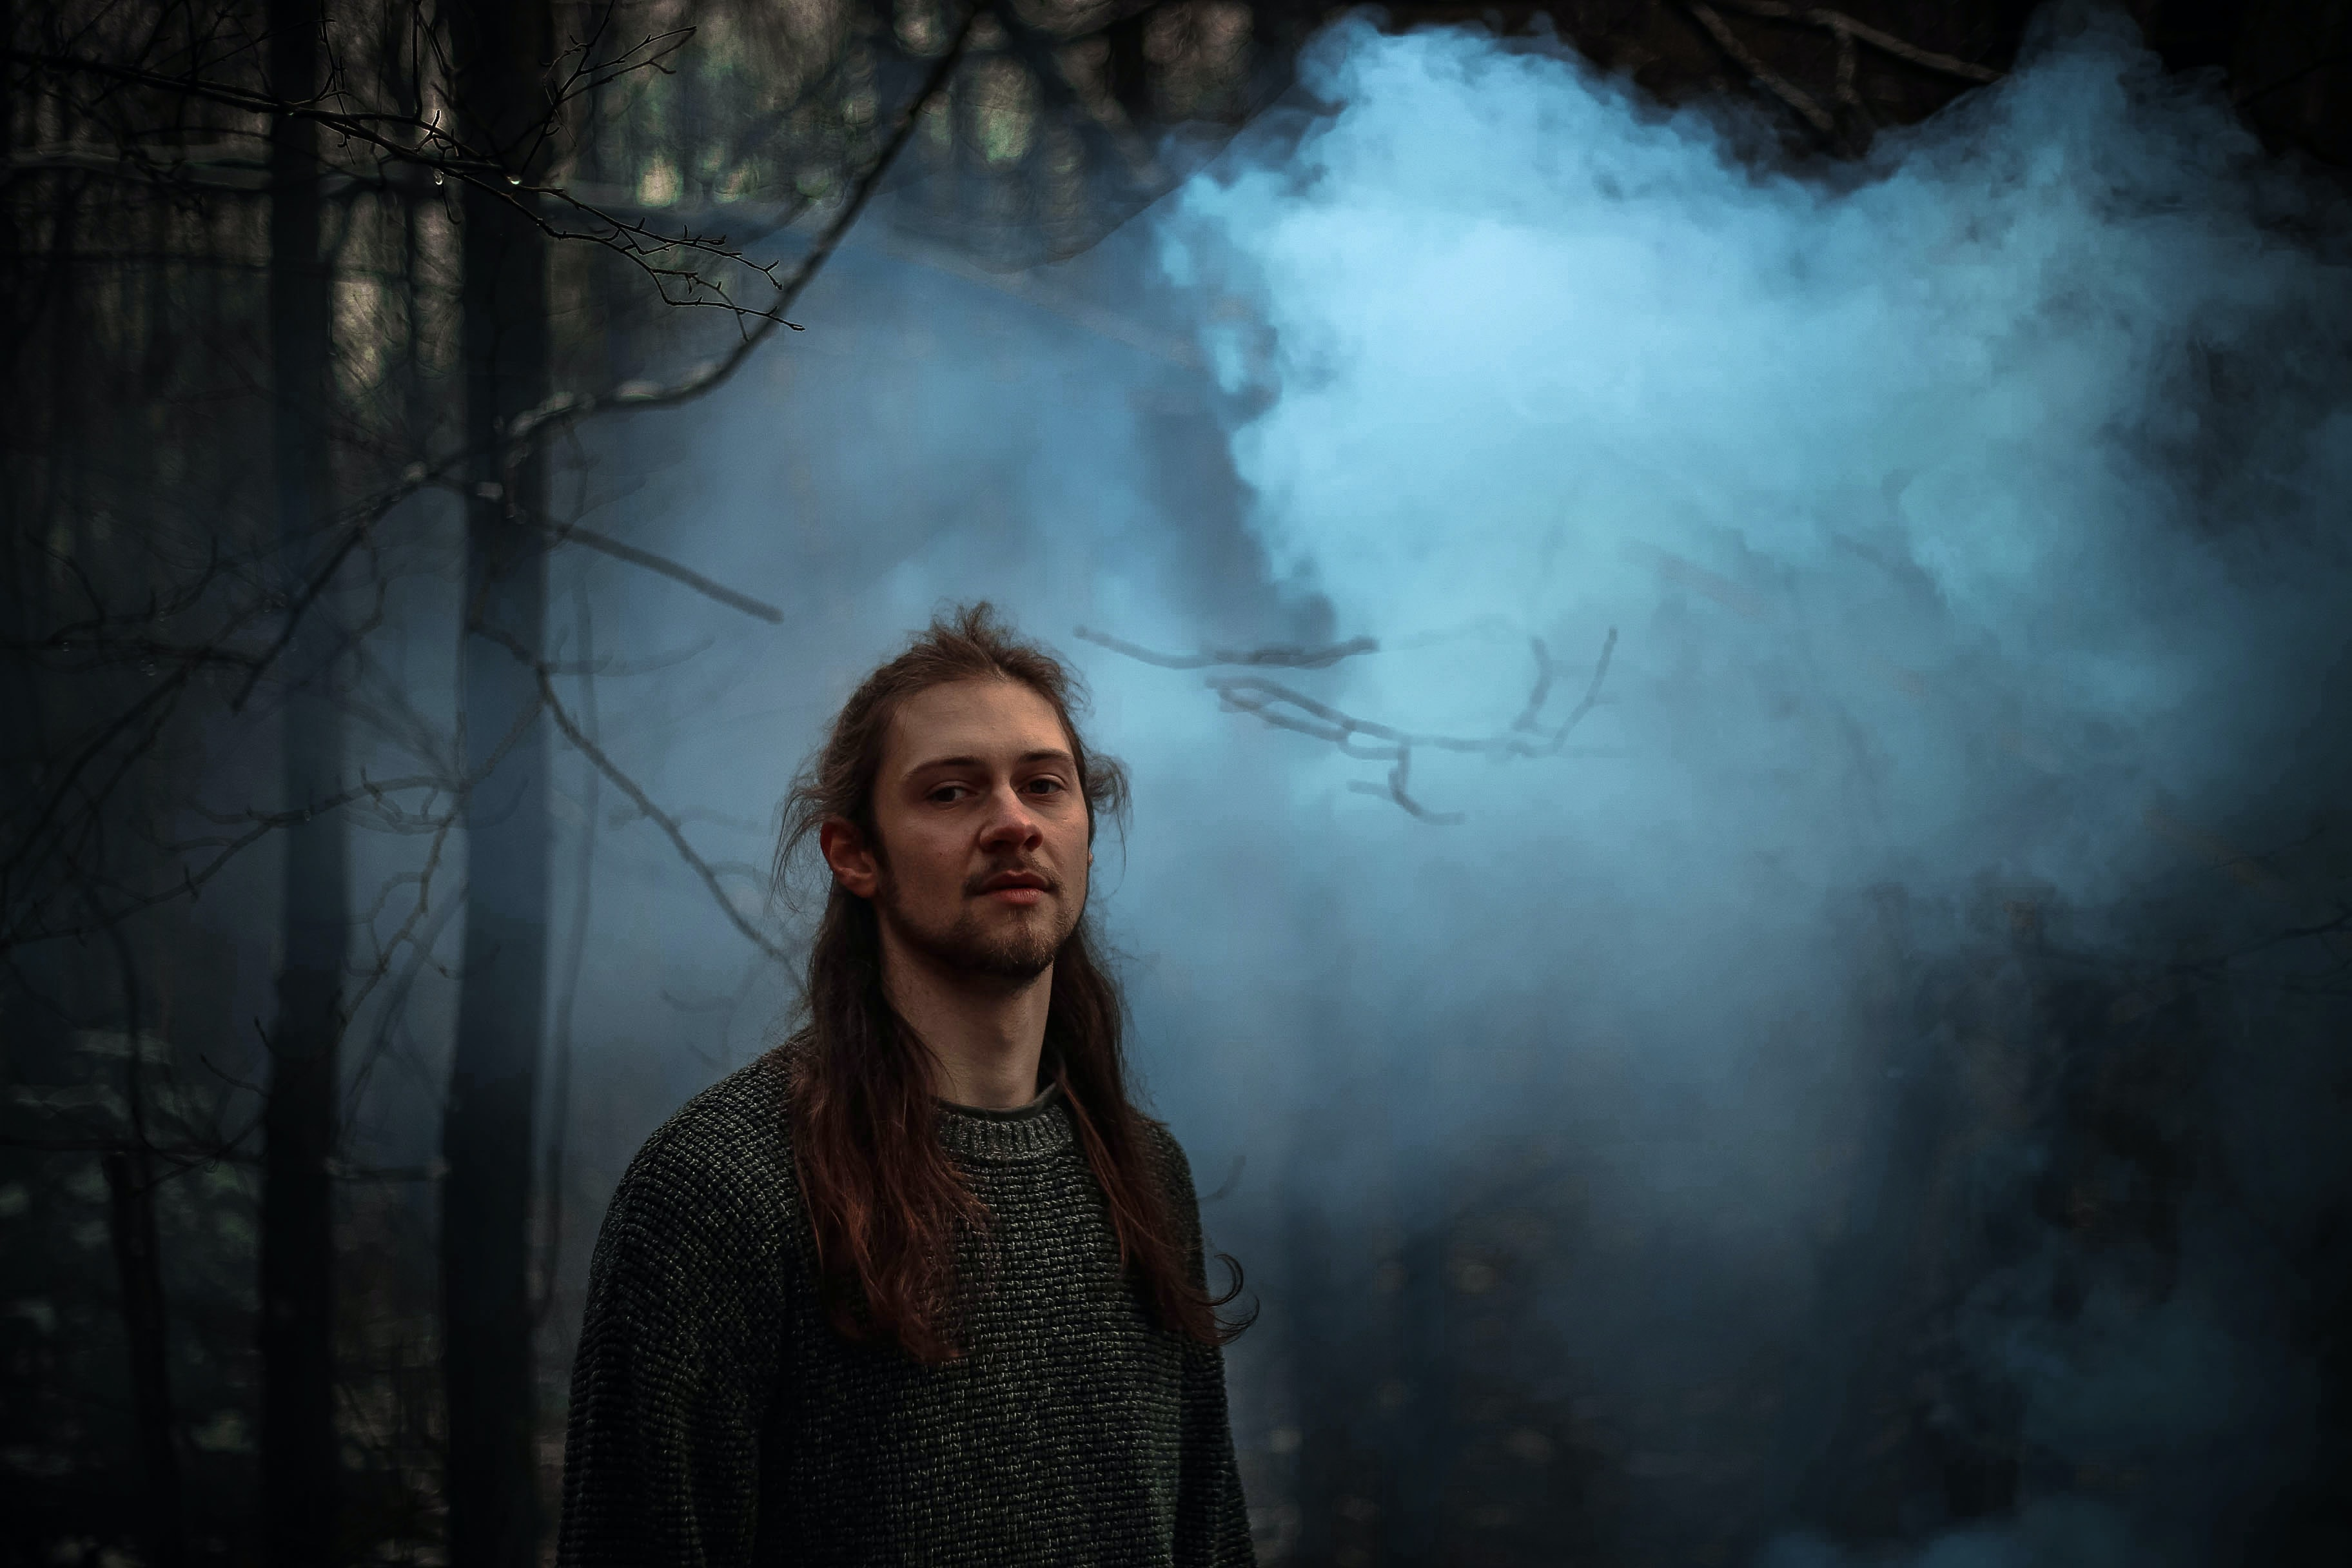 man in black top standing in foggy forest